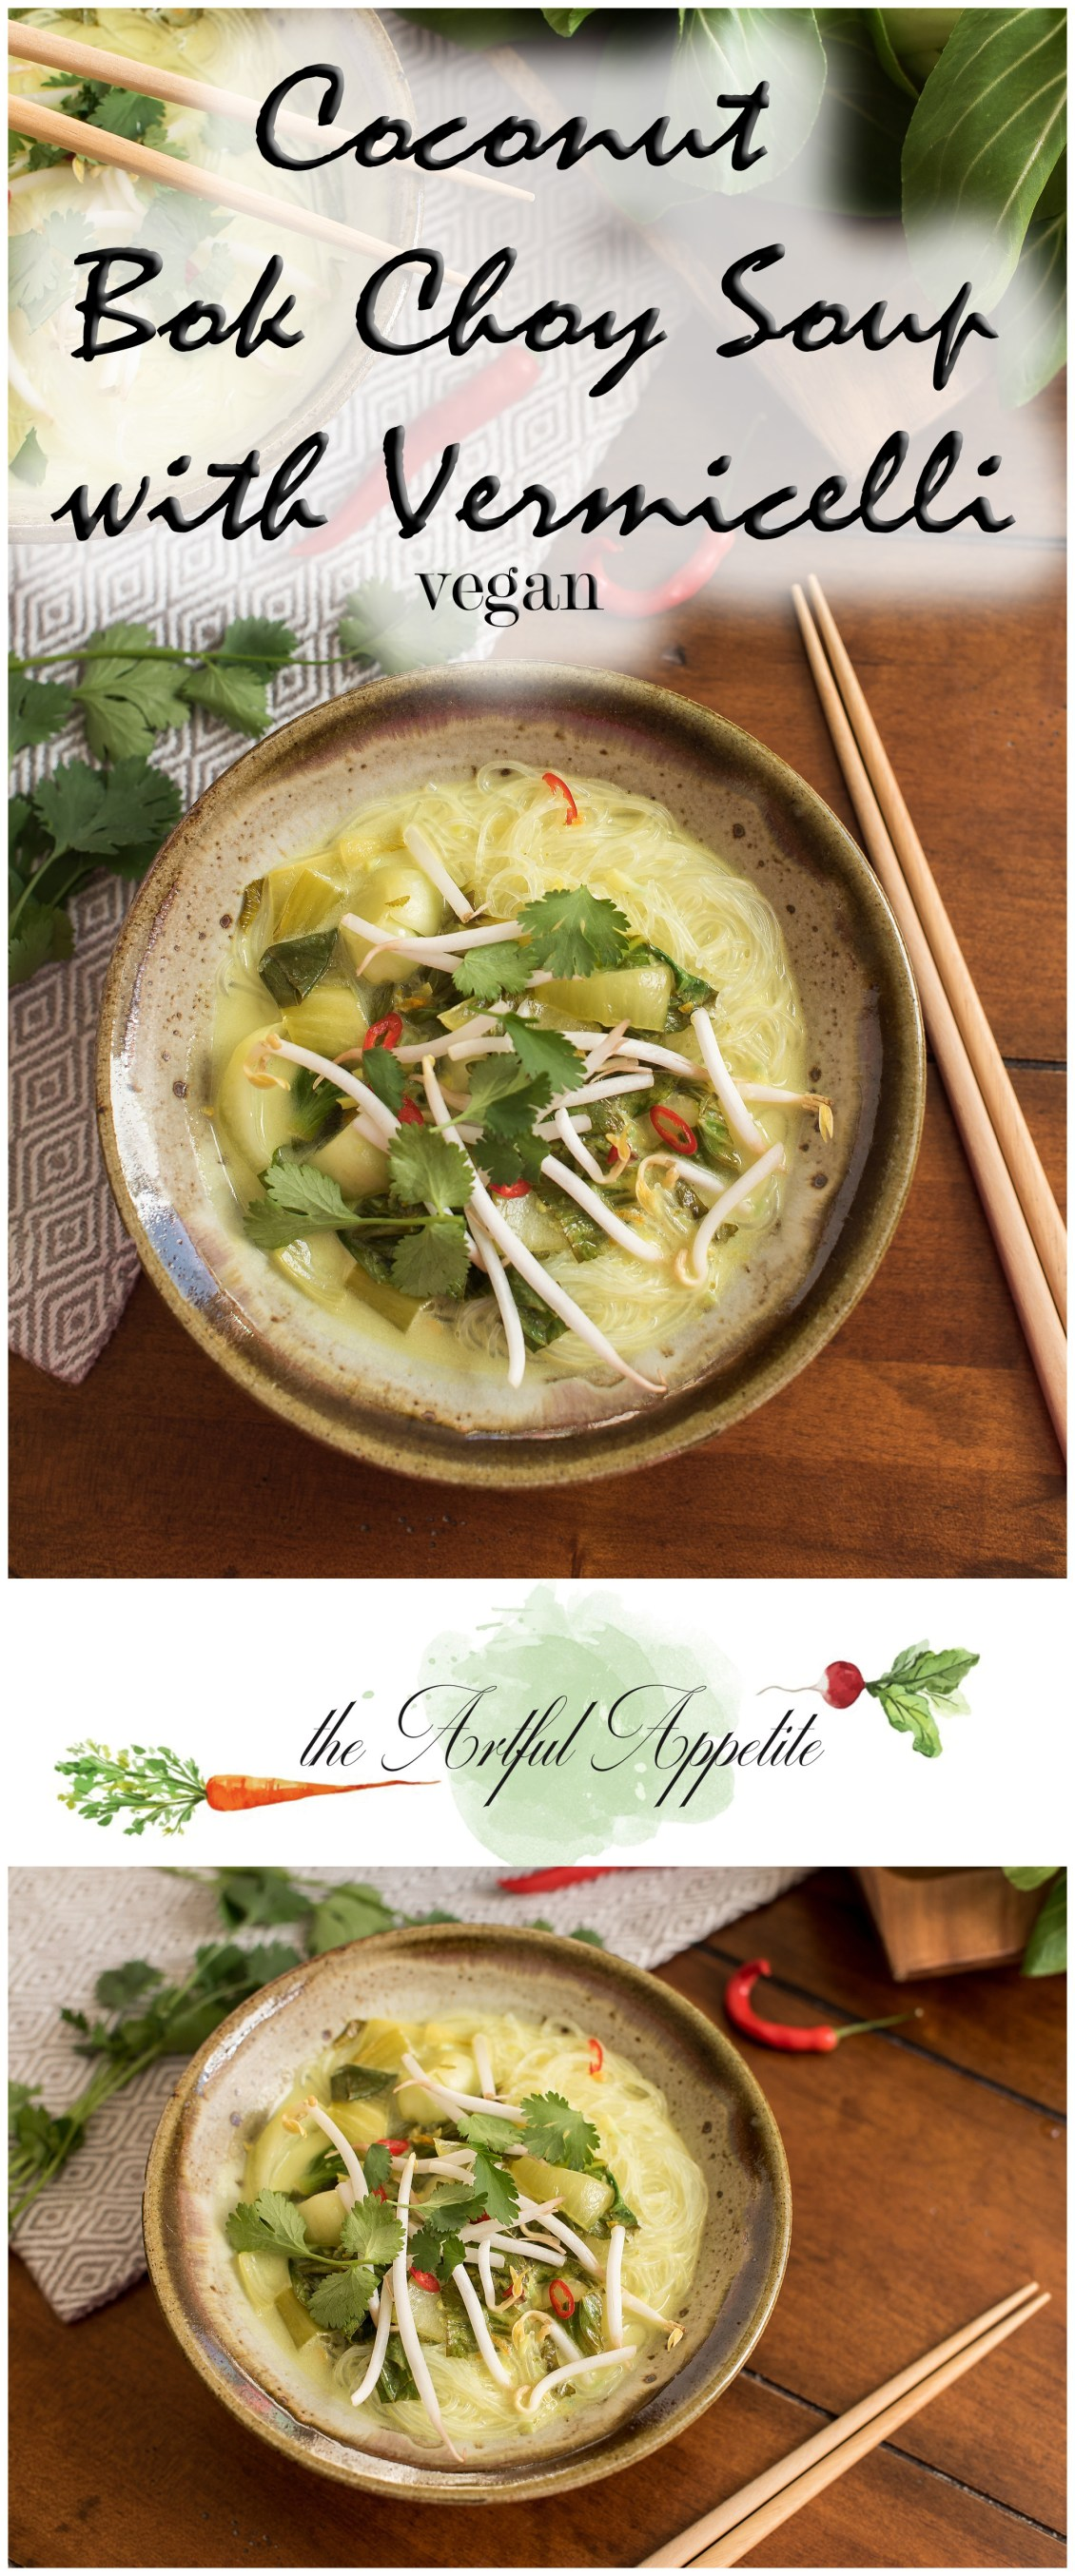 Coconut Bok Choy Soup with Vermicelli and Awesome Vegan Soups Cookbook Review